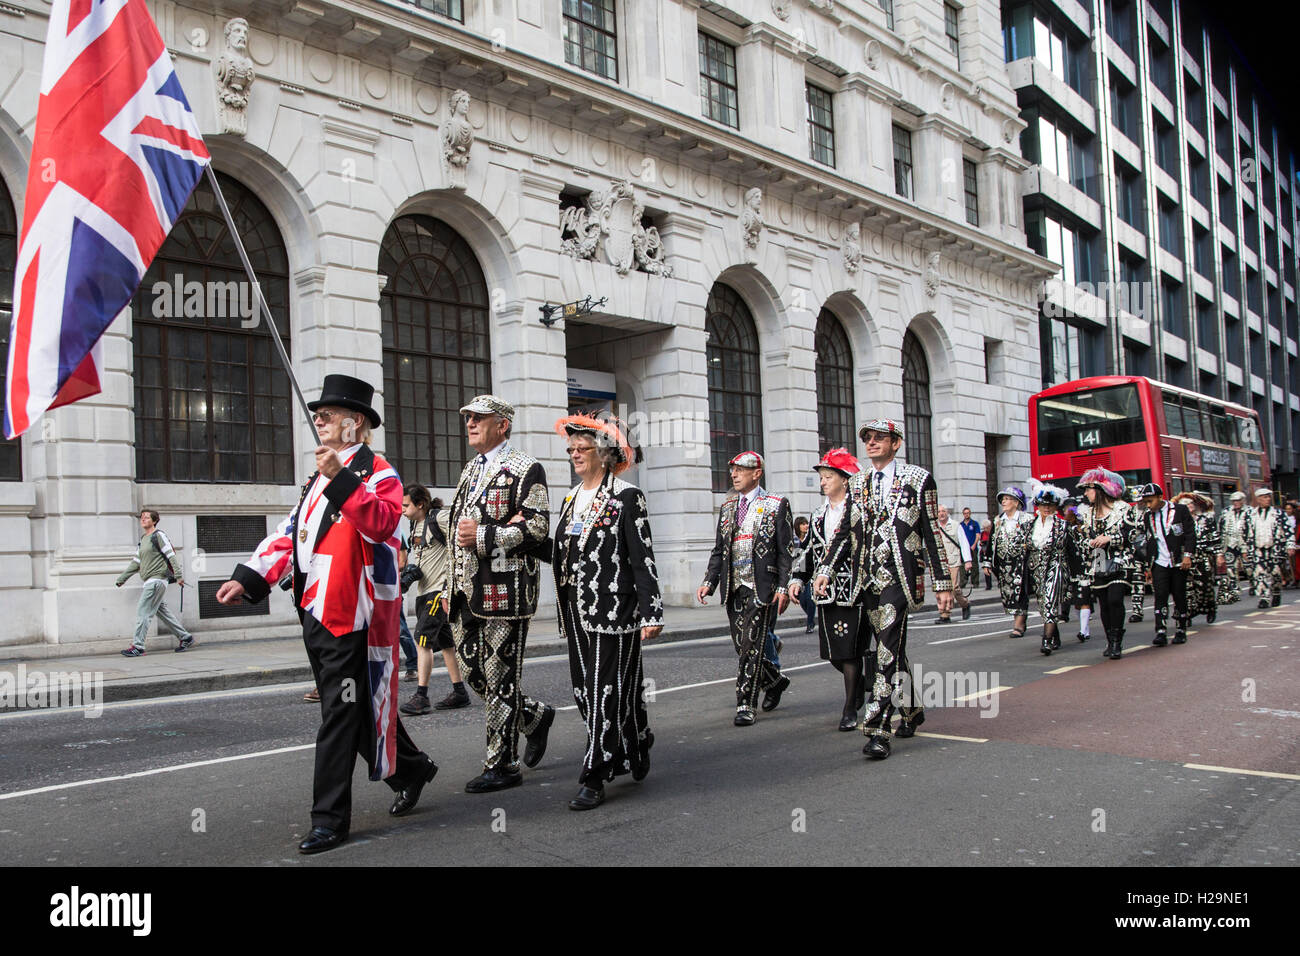 London, UK. 25th September, 2016. Pearly Kings and Queens Harvest Festival at Guildhall Yard, London, England. Credit: - Stock Image